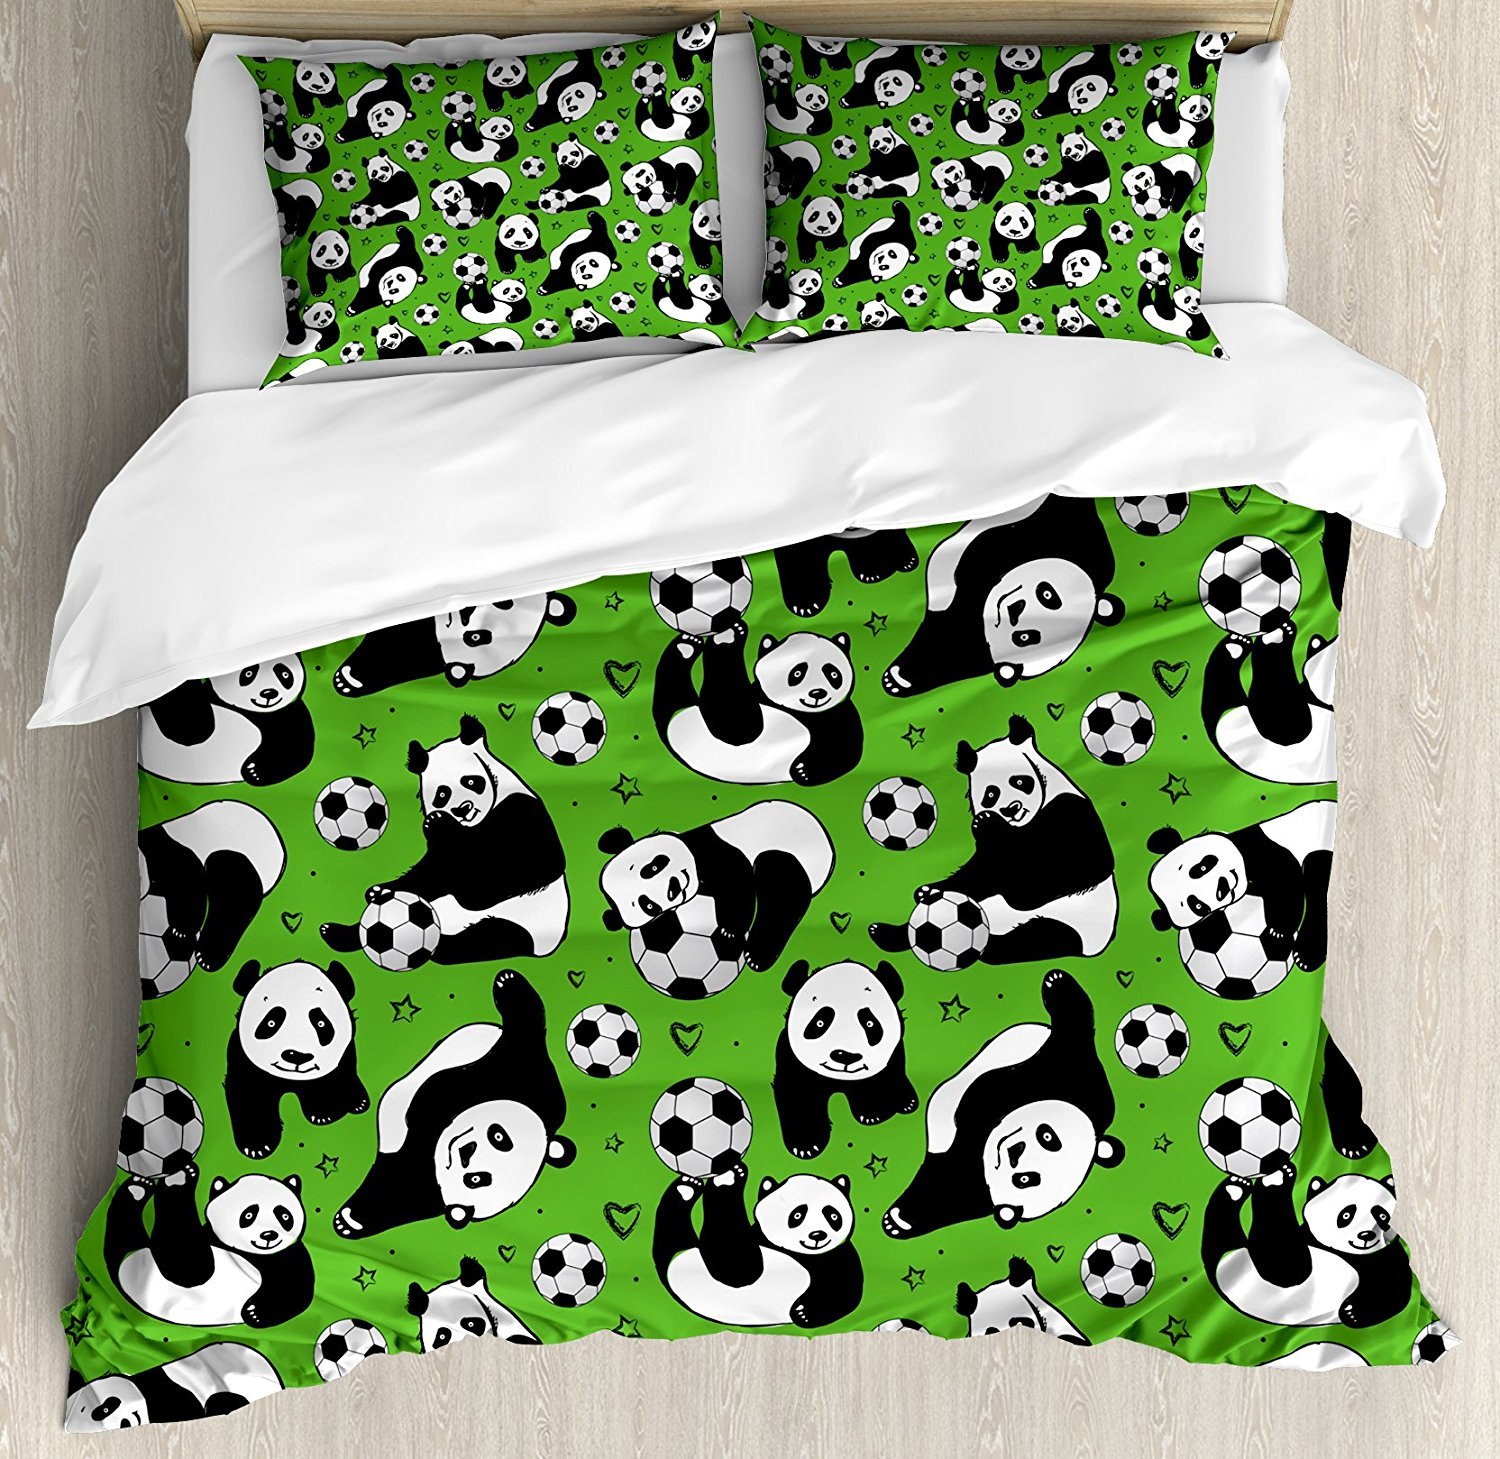 Soccer Duvet Cover Set Funny Panda Animals Playing with Balls Hand Drawn Style Hearts and Stars, 4 Piece Bedding Set